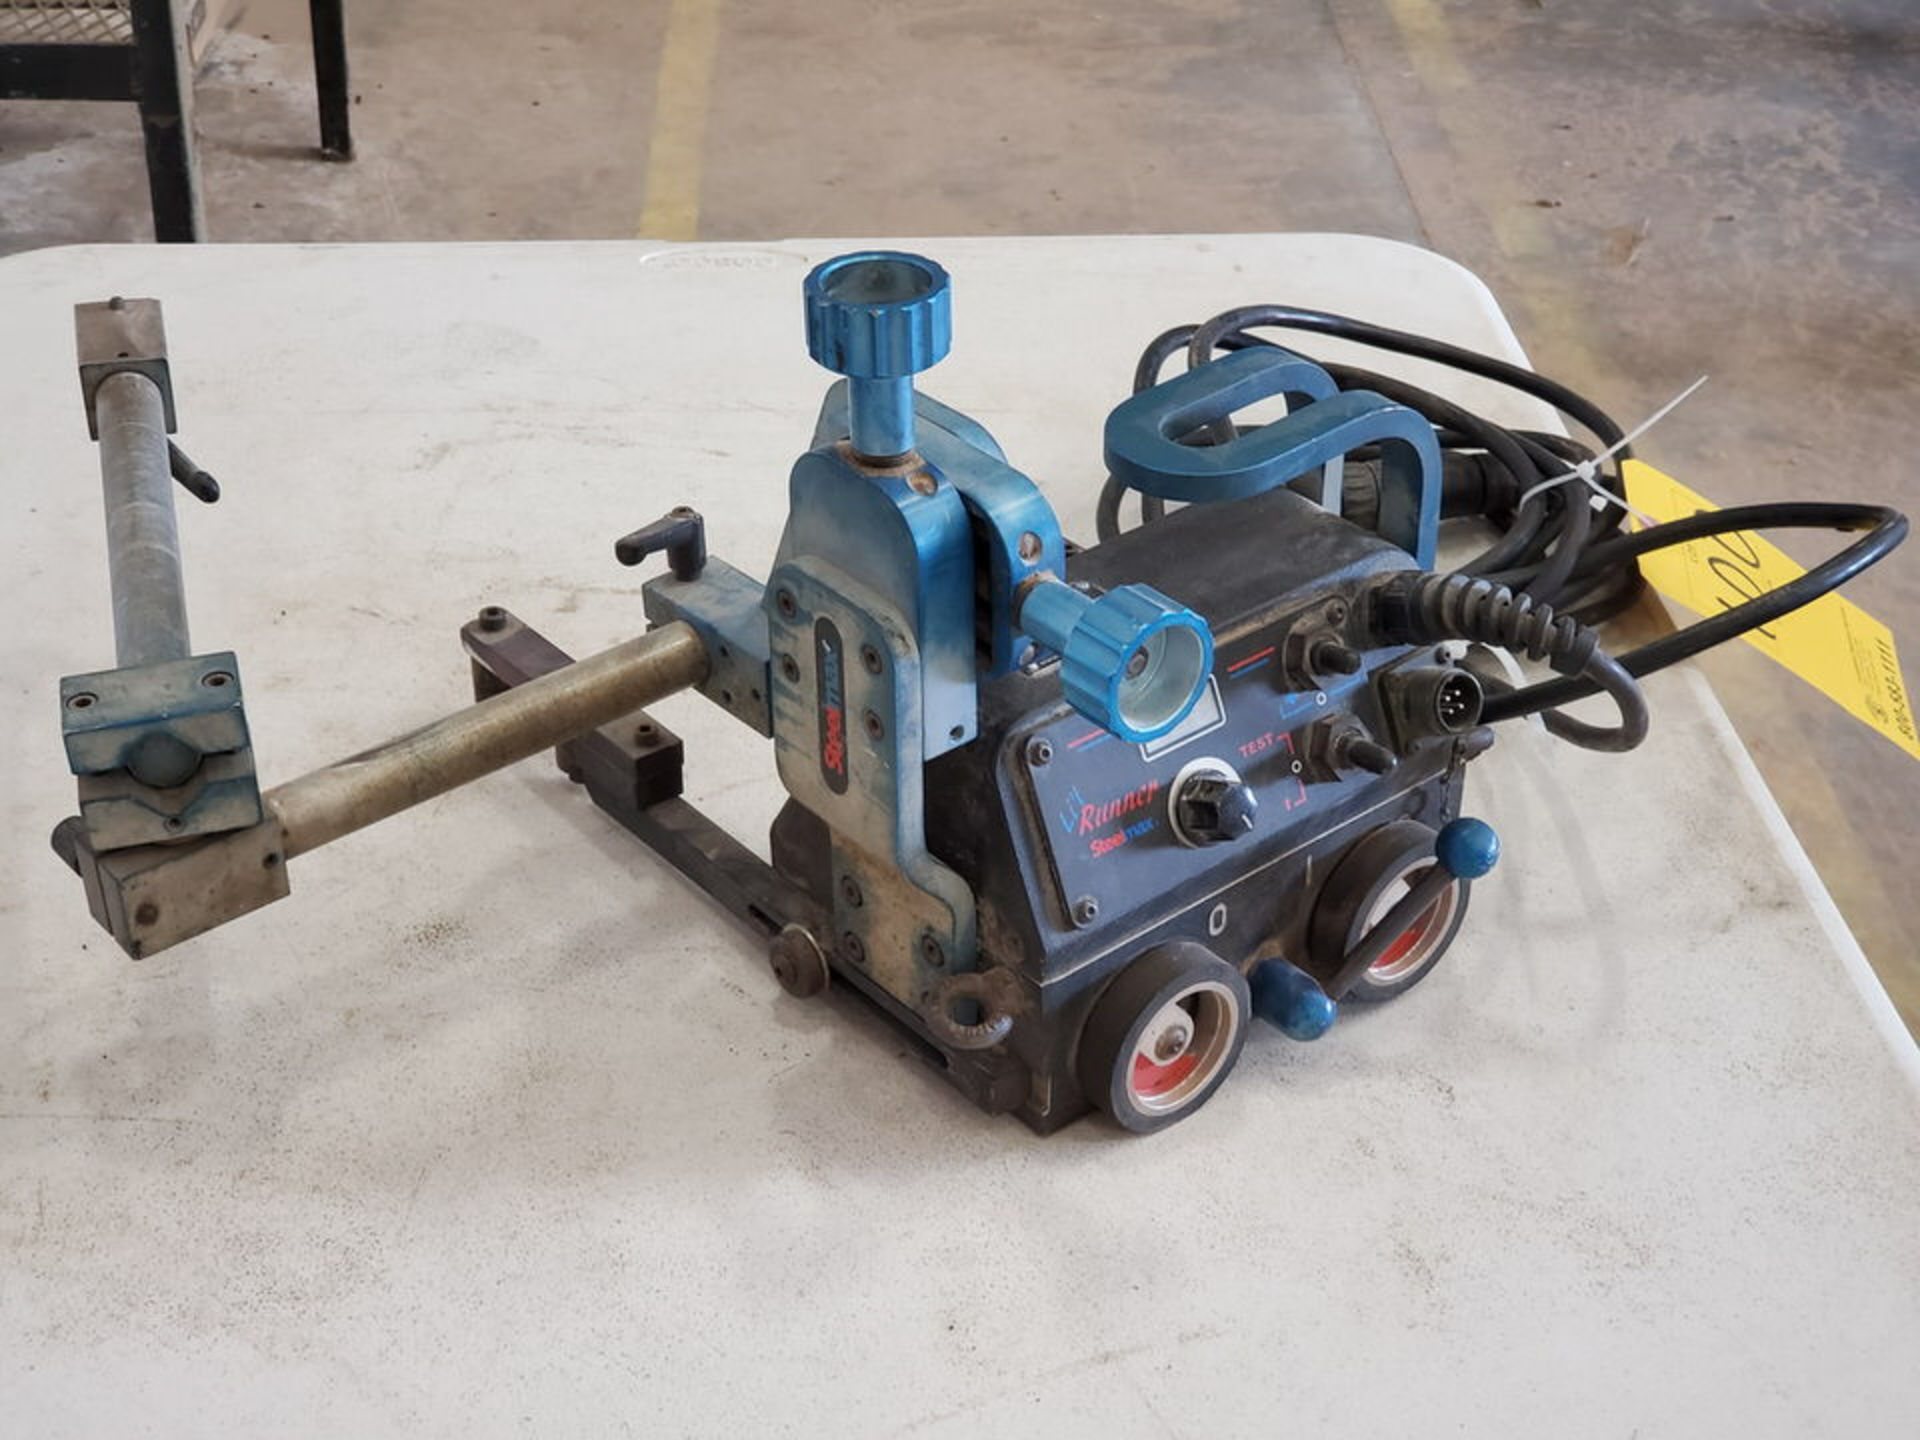 Steelmax Lil Runner Portable Fillet Welding Carriage 115-230V, 50/60HZ, 20W, .09-.18A - Image 2 of 7